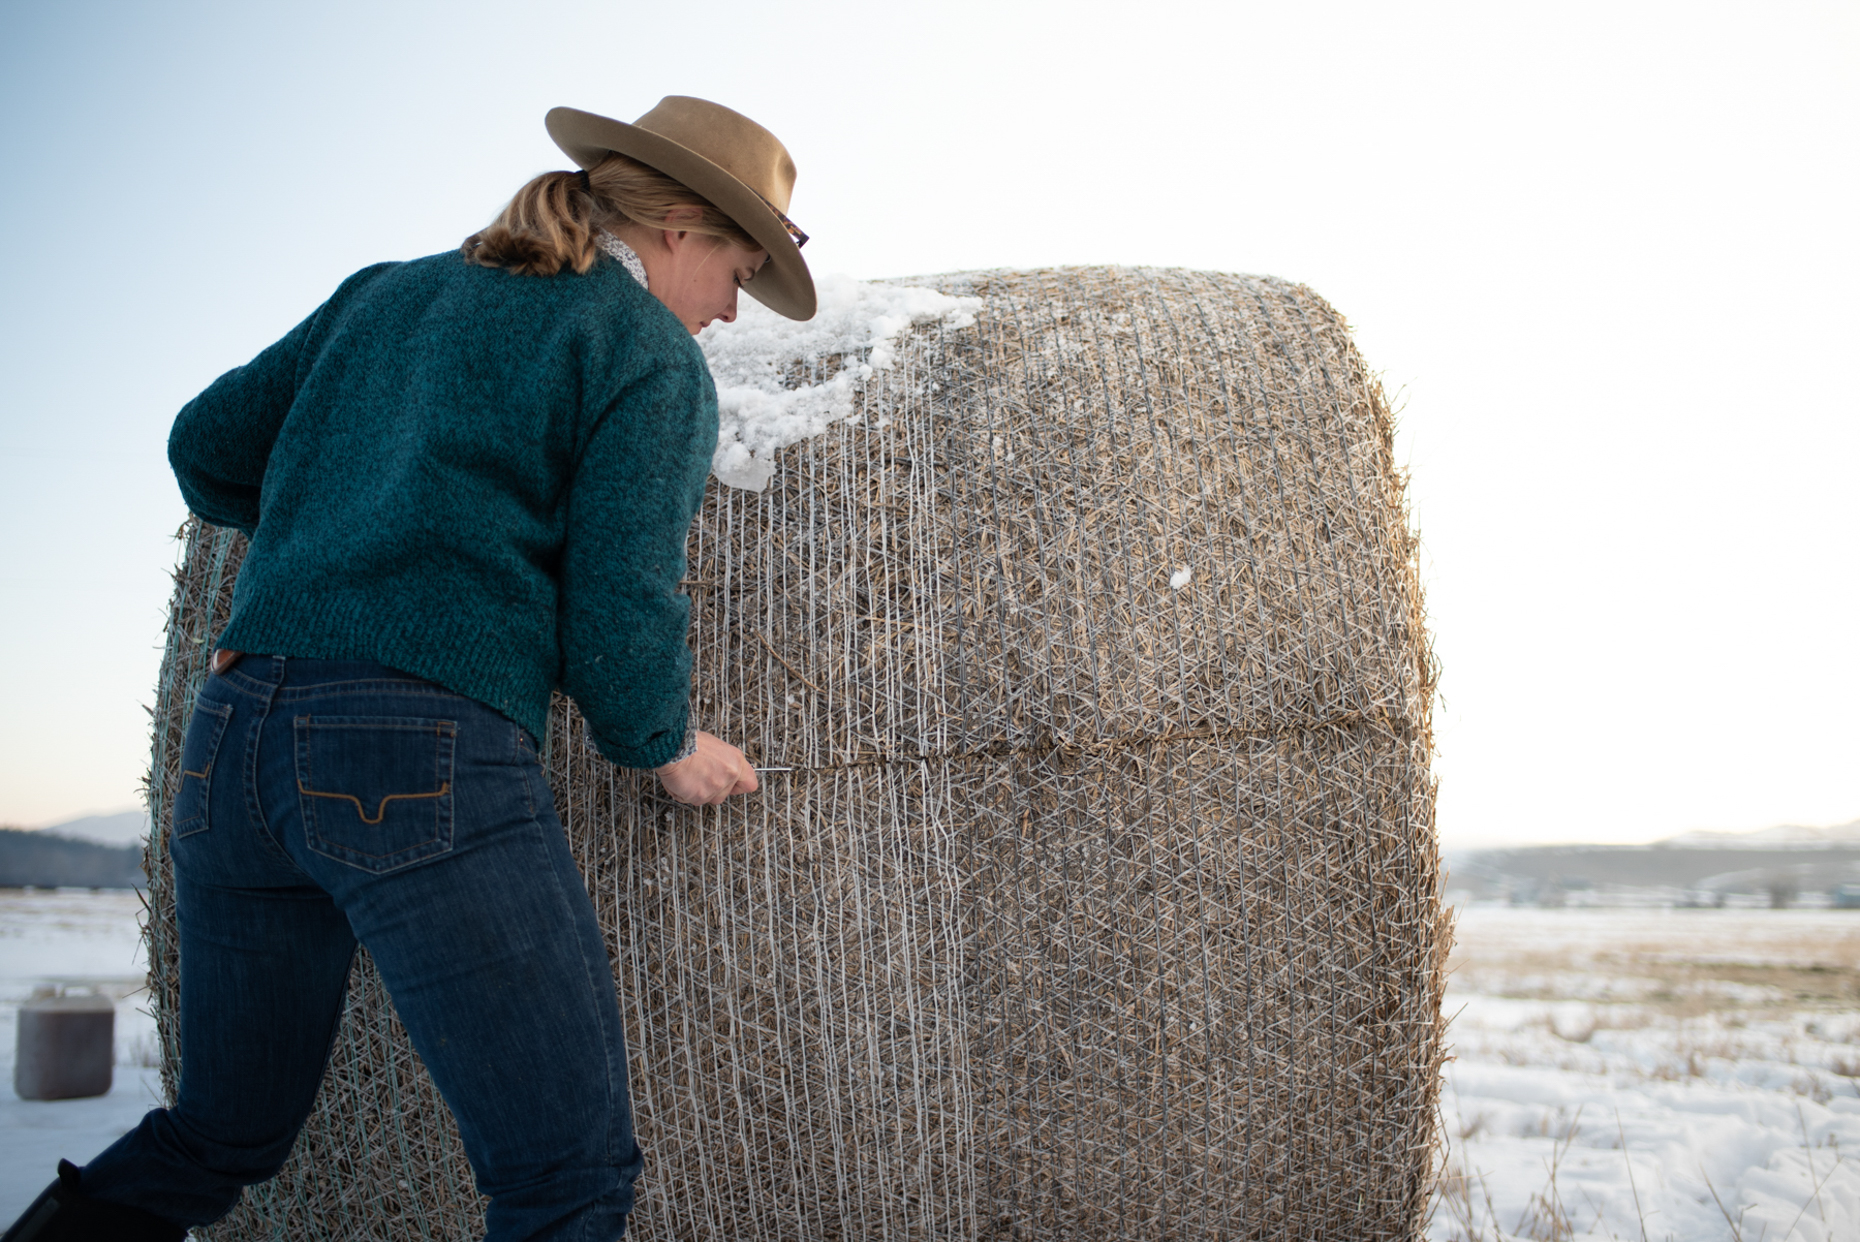 Woman cuts open hay bale while feeding cattle on Montana ranch. Isaac Miller Photography  | Agriculture & Industry Photographer  |  Commercial & Editorial photography  |   Missoula + San Antonio